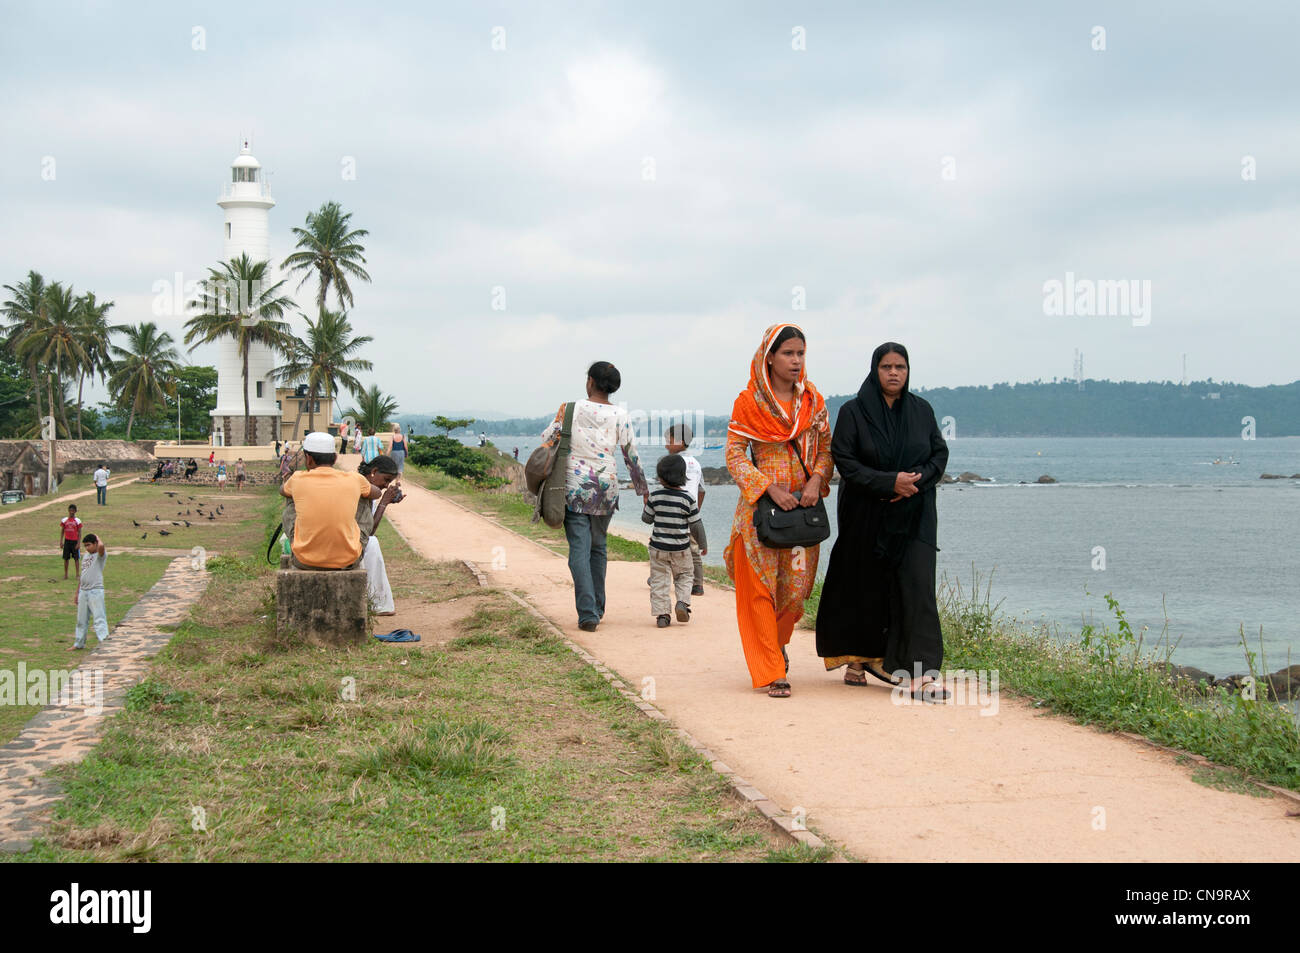 Muslim and Hindu families walking along the ramparts of the Galle Fort Sri Lanka with the lighthouse in the background - Stock Image